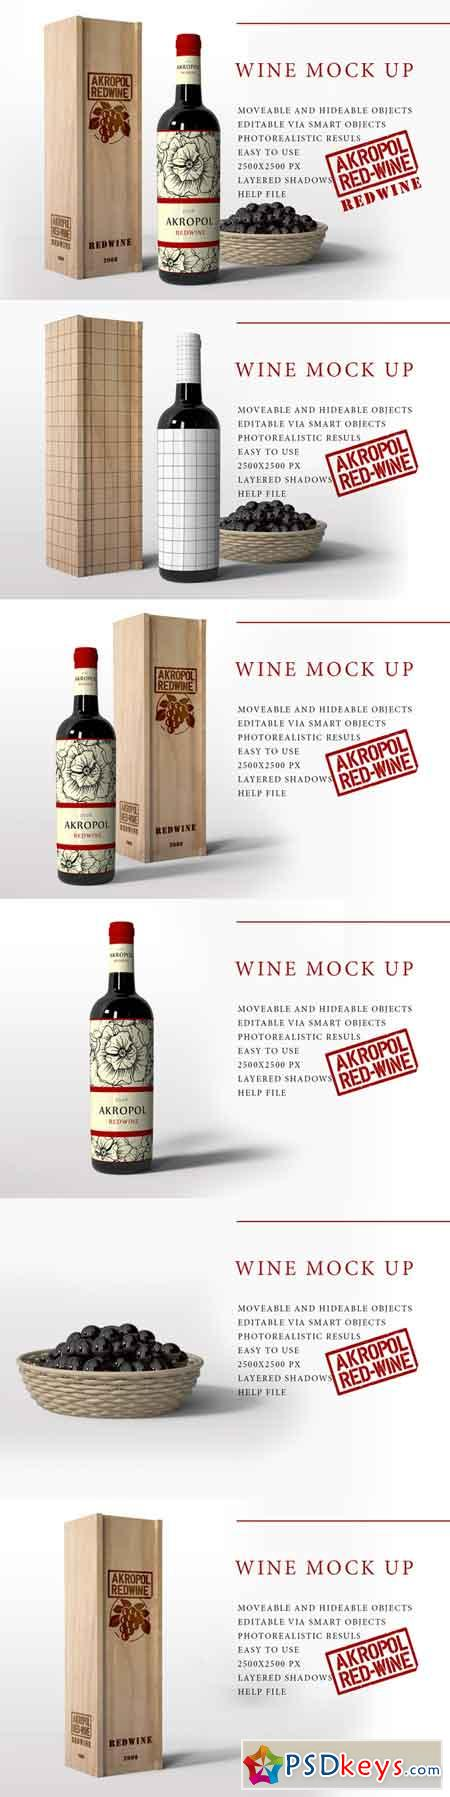 Wine Mock Up 724699